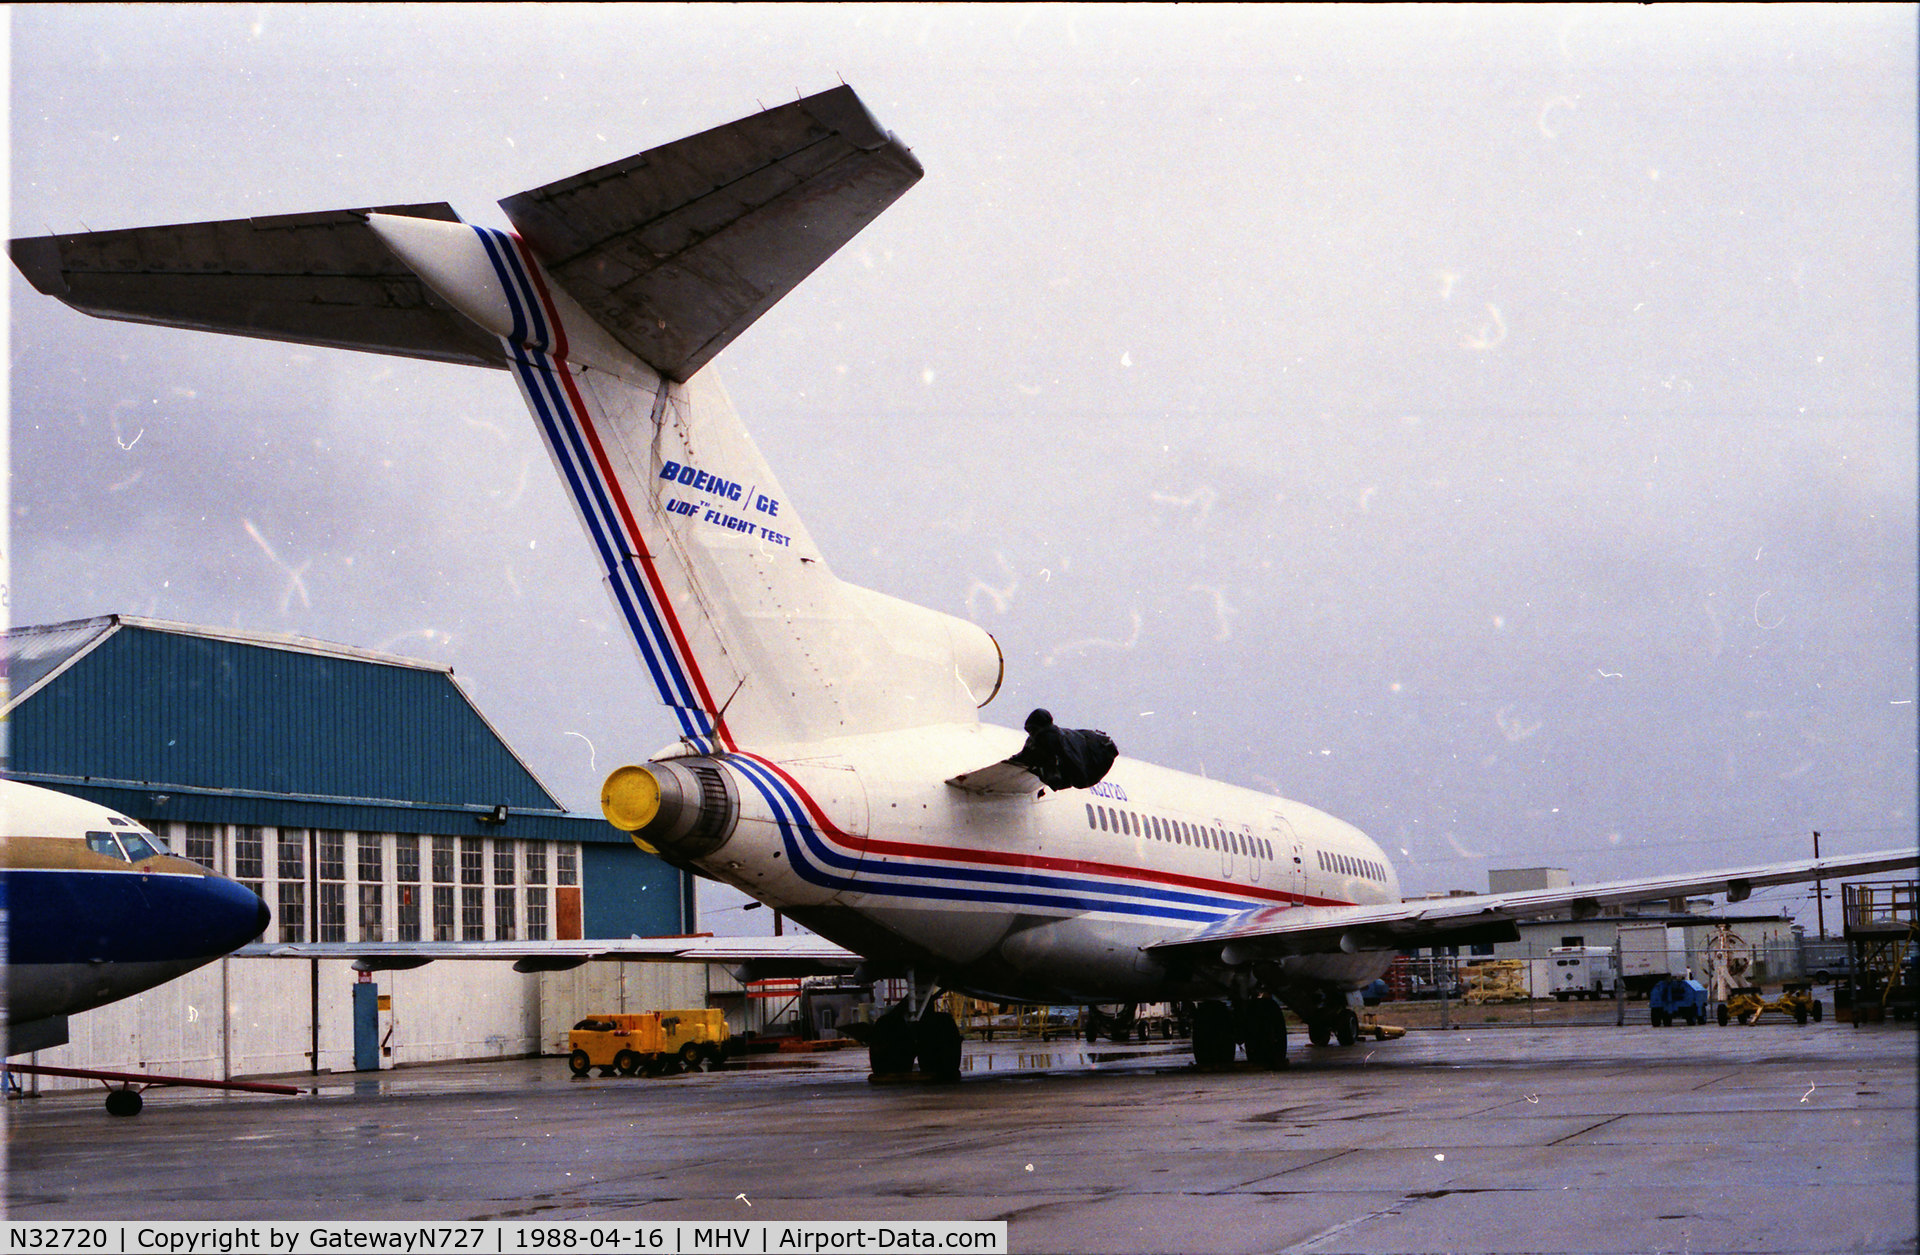 N32720, 1968 Boeing 727-063 C/N 19846, Used as Unducted Fan test bed. Originally delivered to Faucett in 1968.